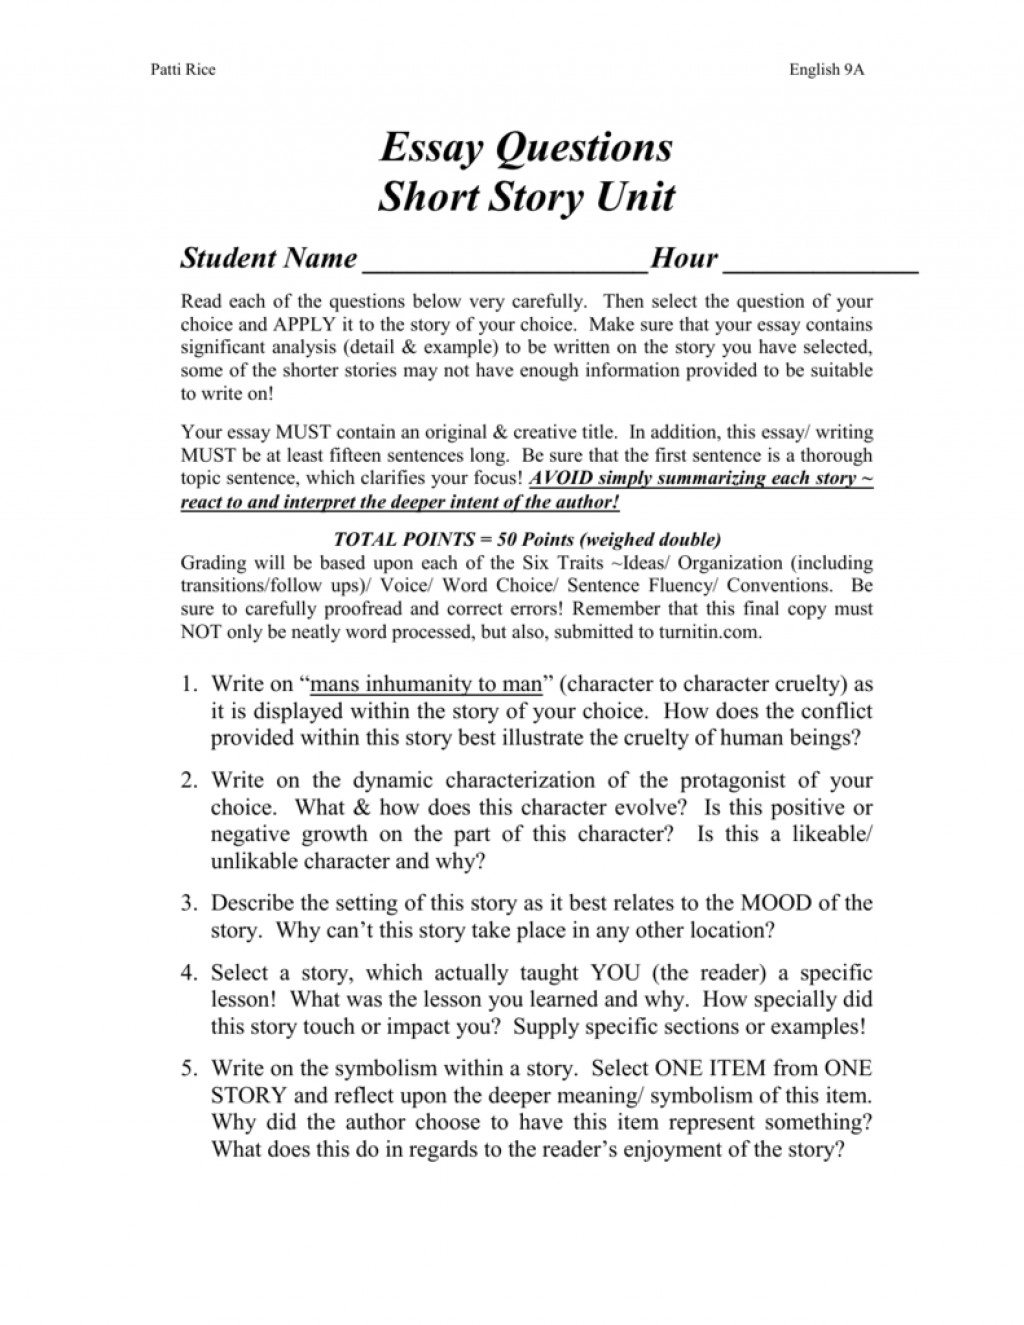 006 Short Story Essay Examples Example 008001643 1 Unforgettable Analysis Comparison Large